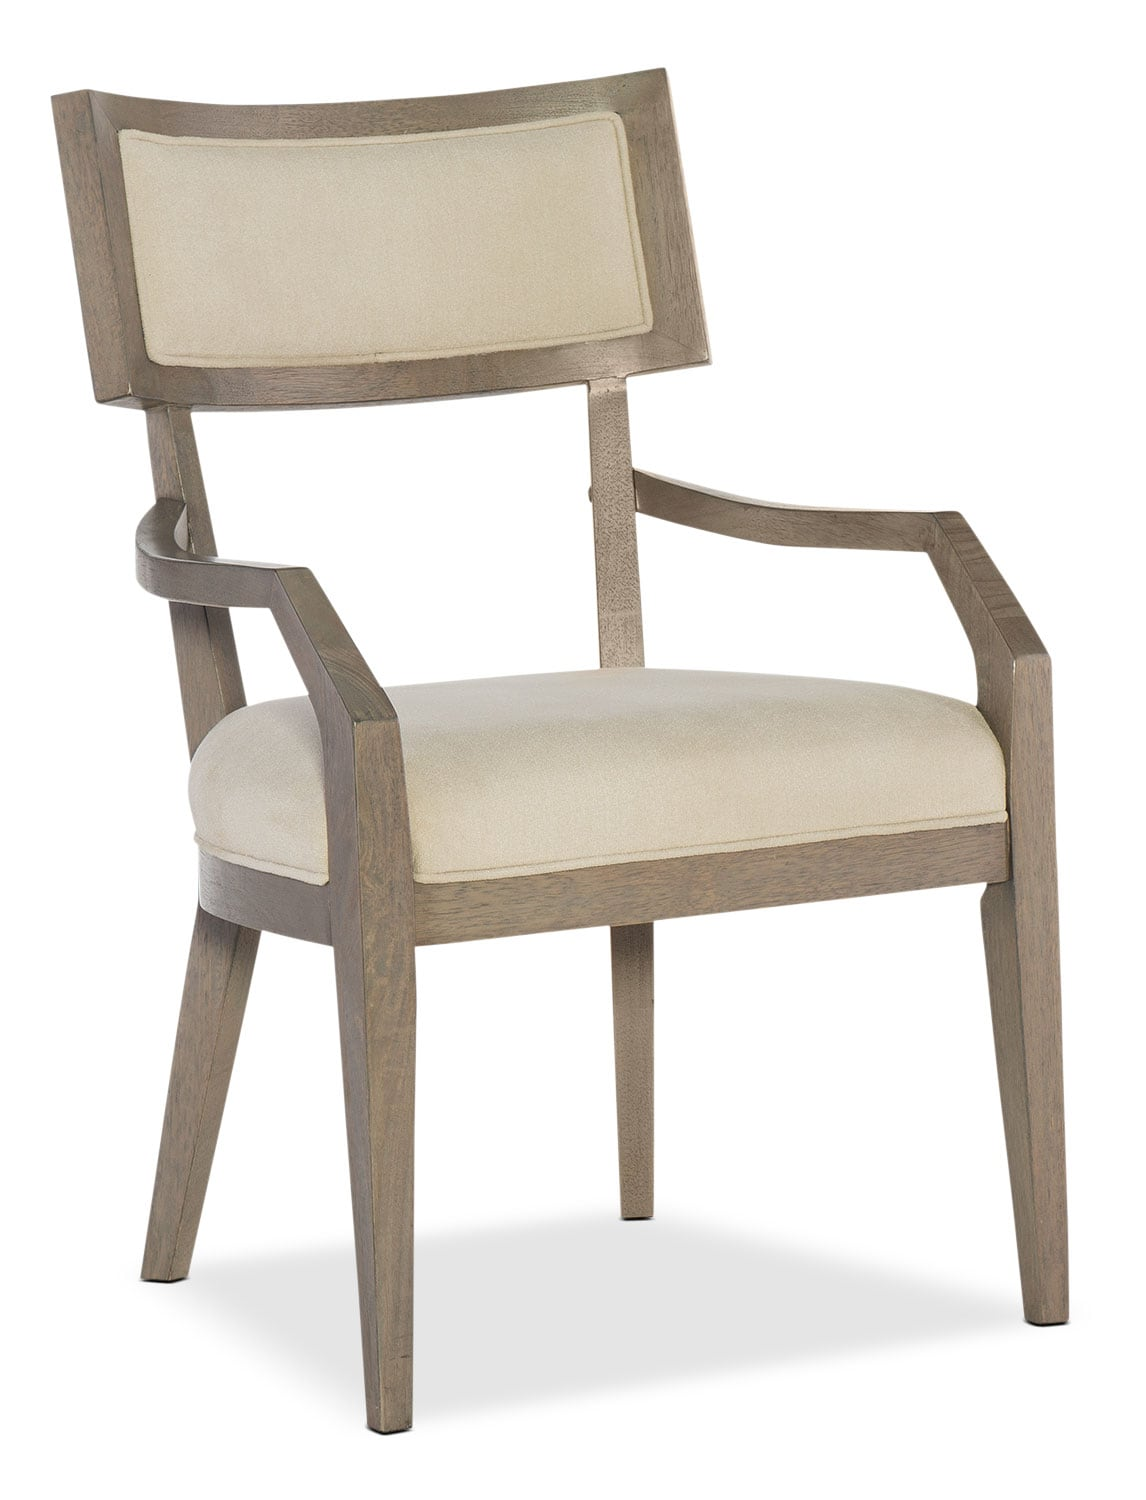 Dining Room Furniture - Rachael Ray Highline Arm Chair - Greige